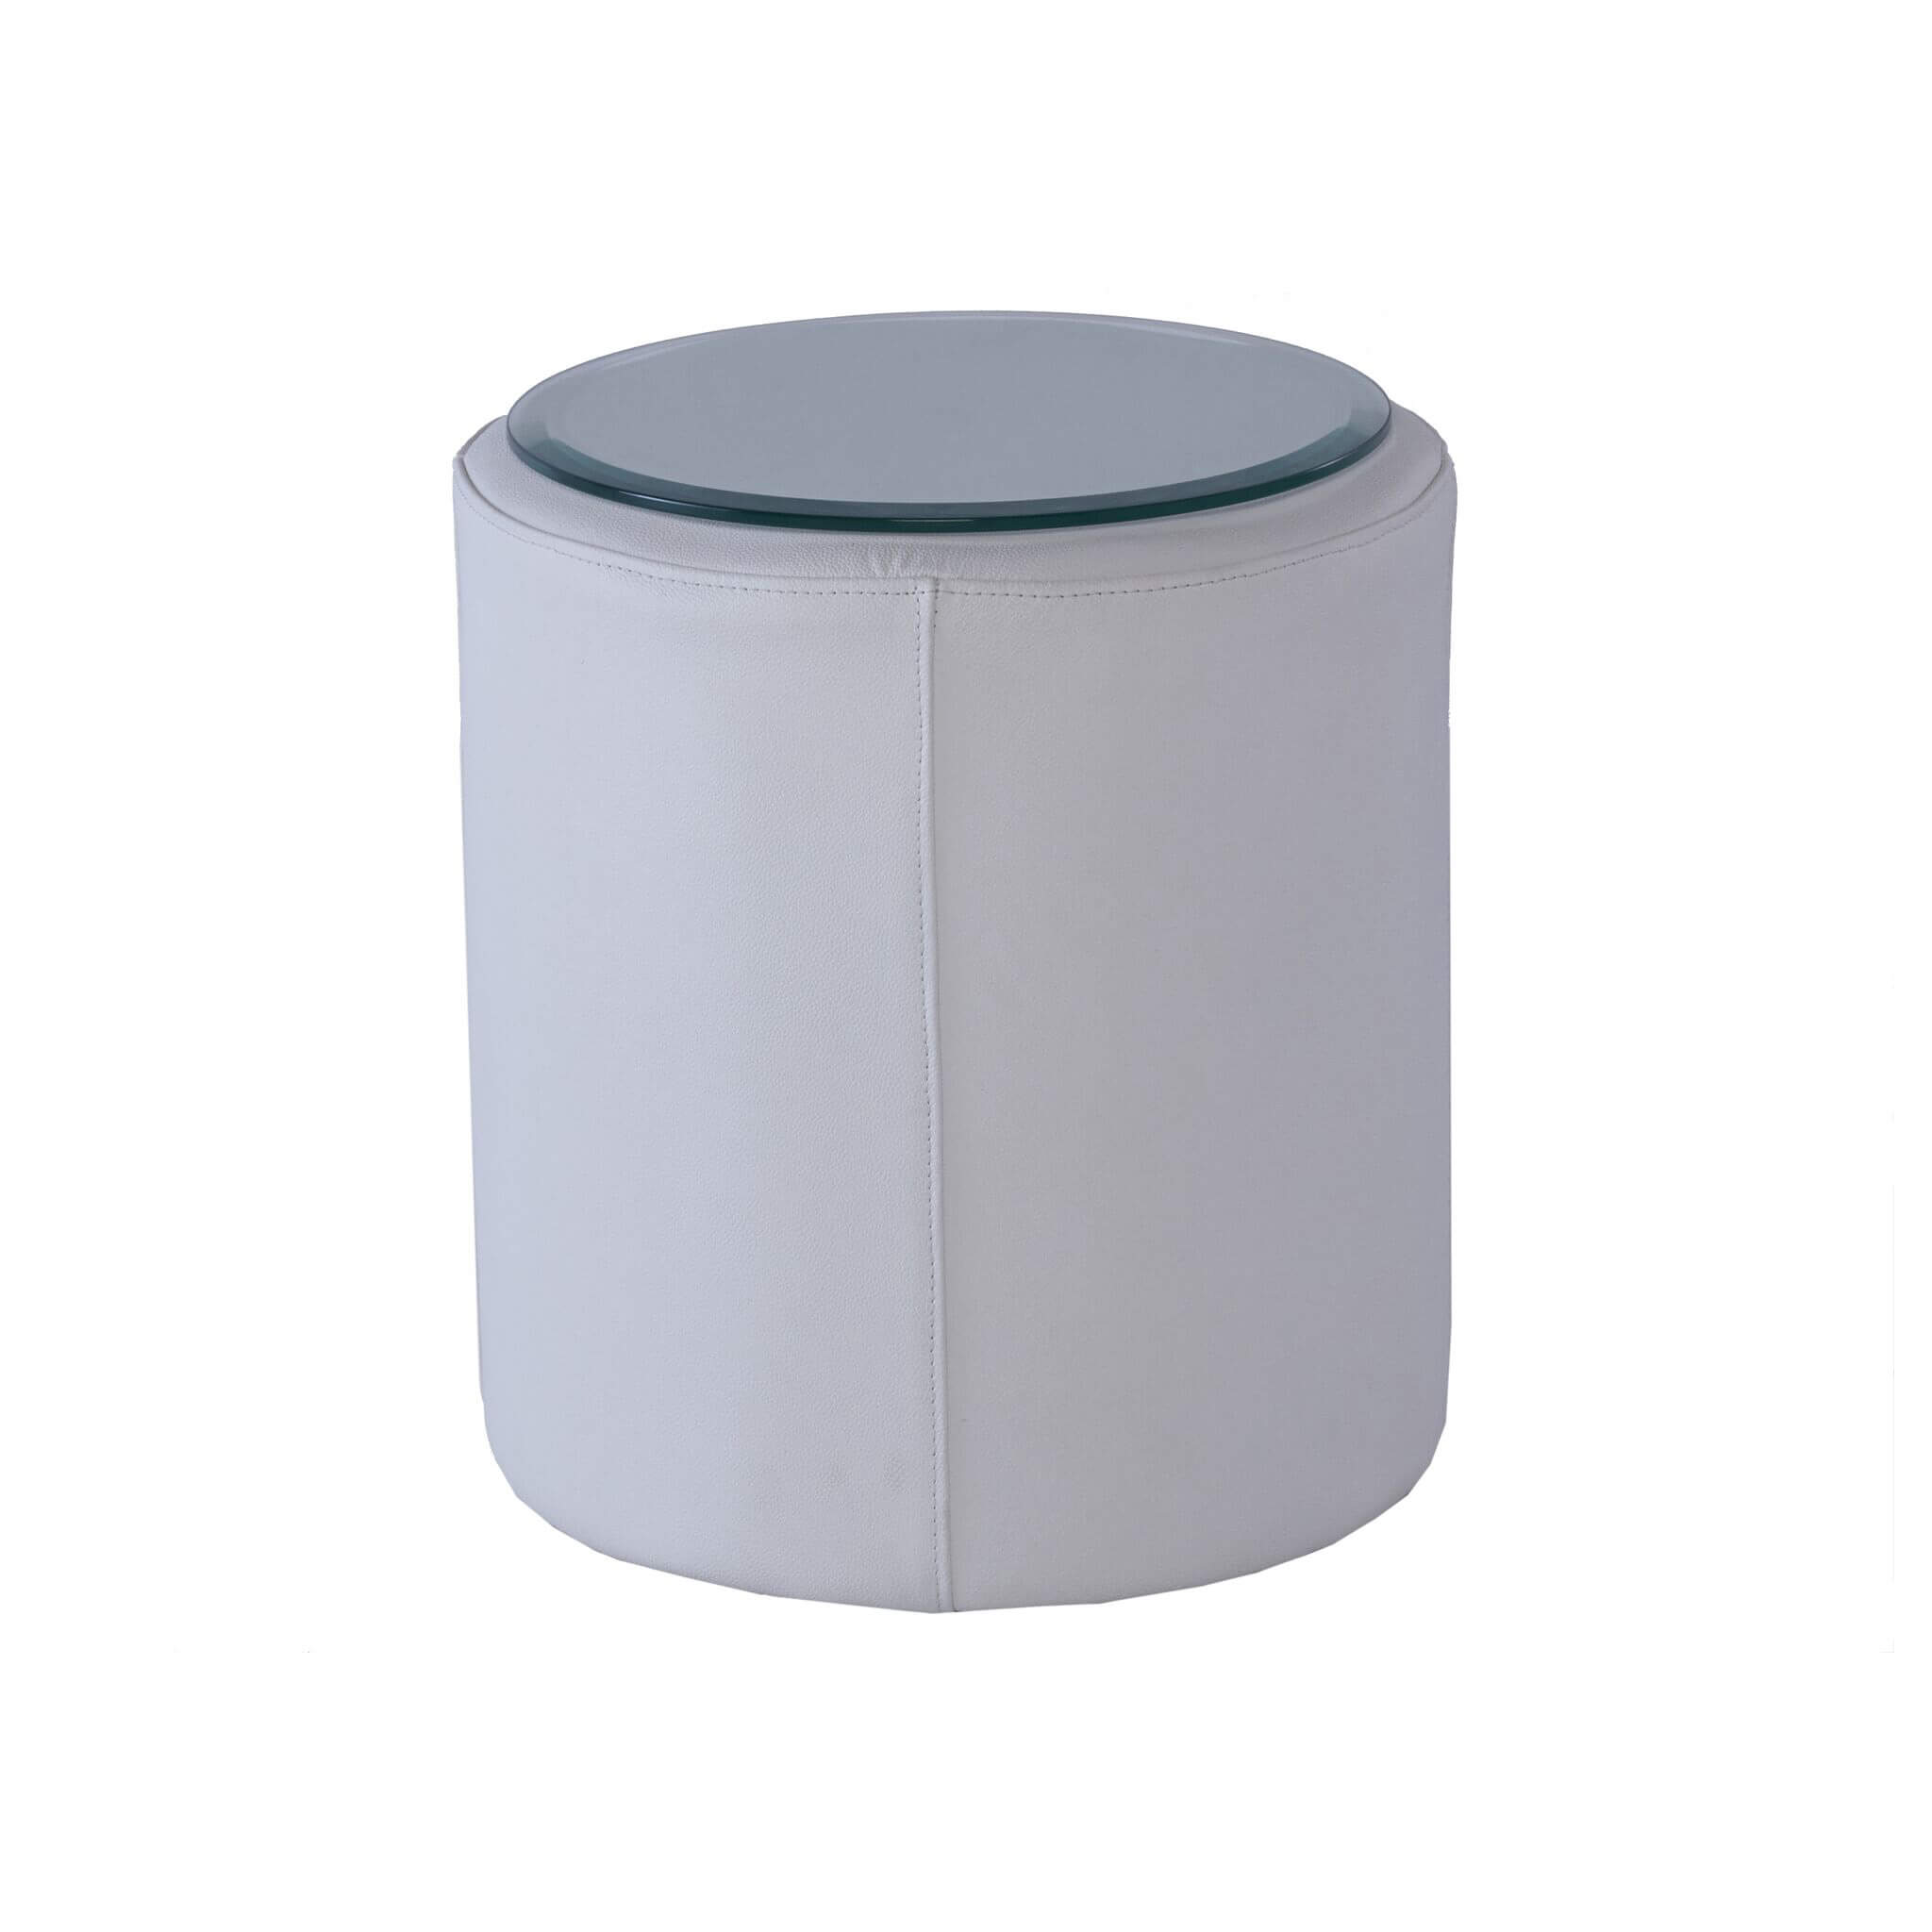 Enzo side table at FADS.co.uk